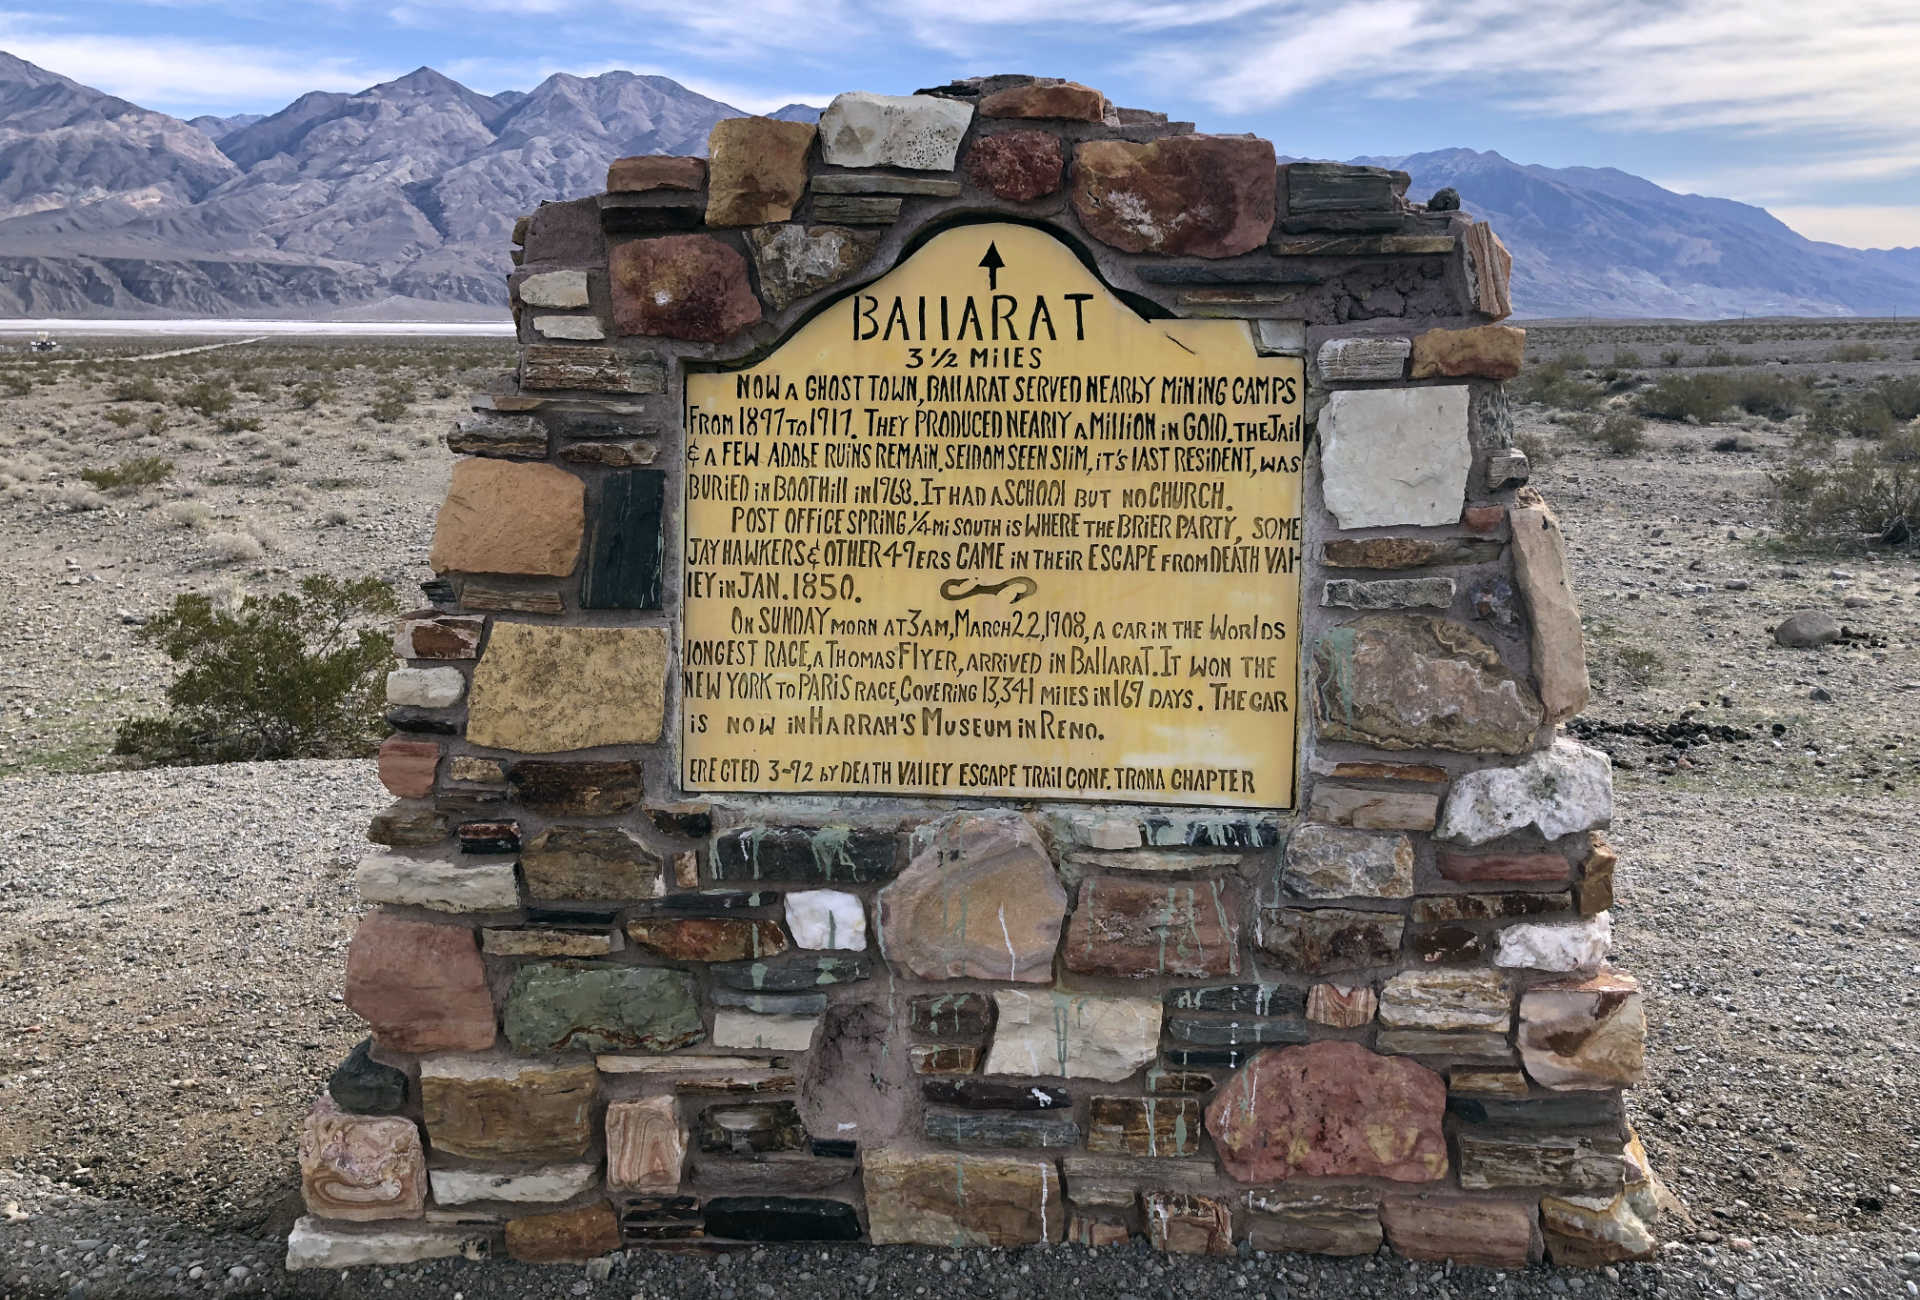 Did you know there's an incredible little ghost town called Ballarat in Death Valley you can visit?!